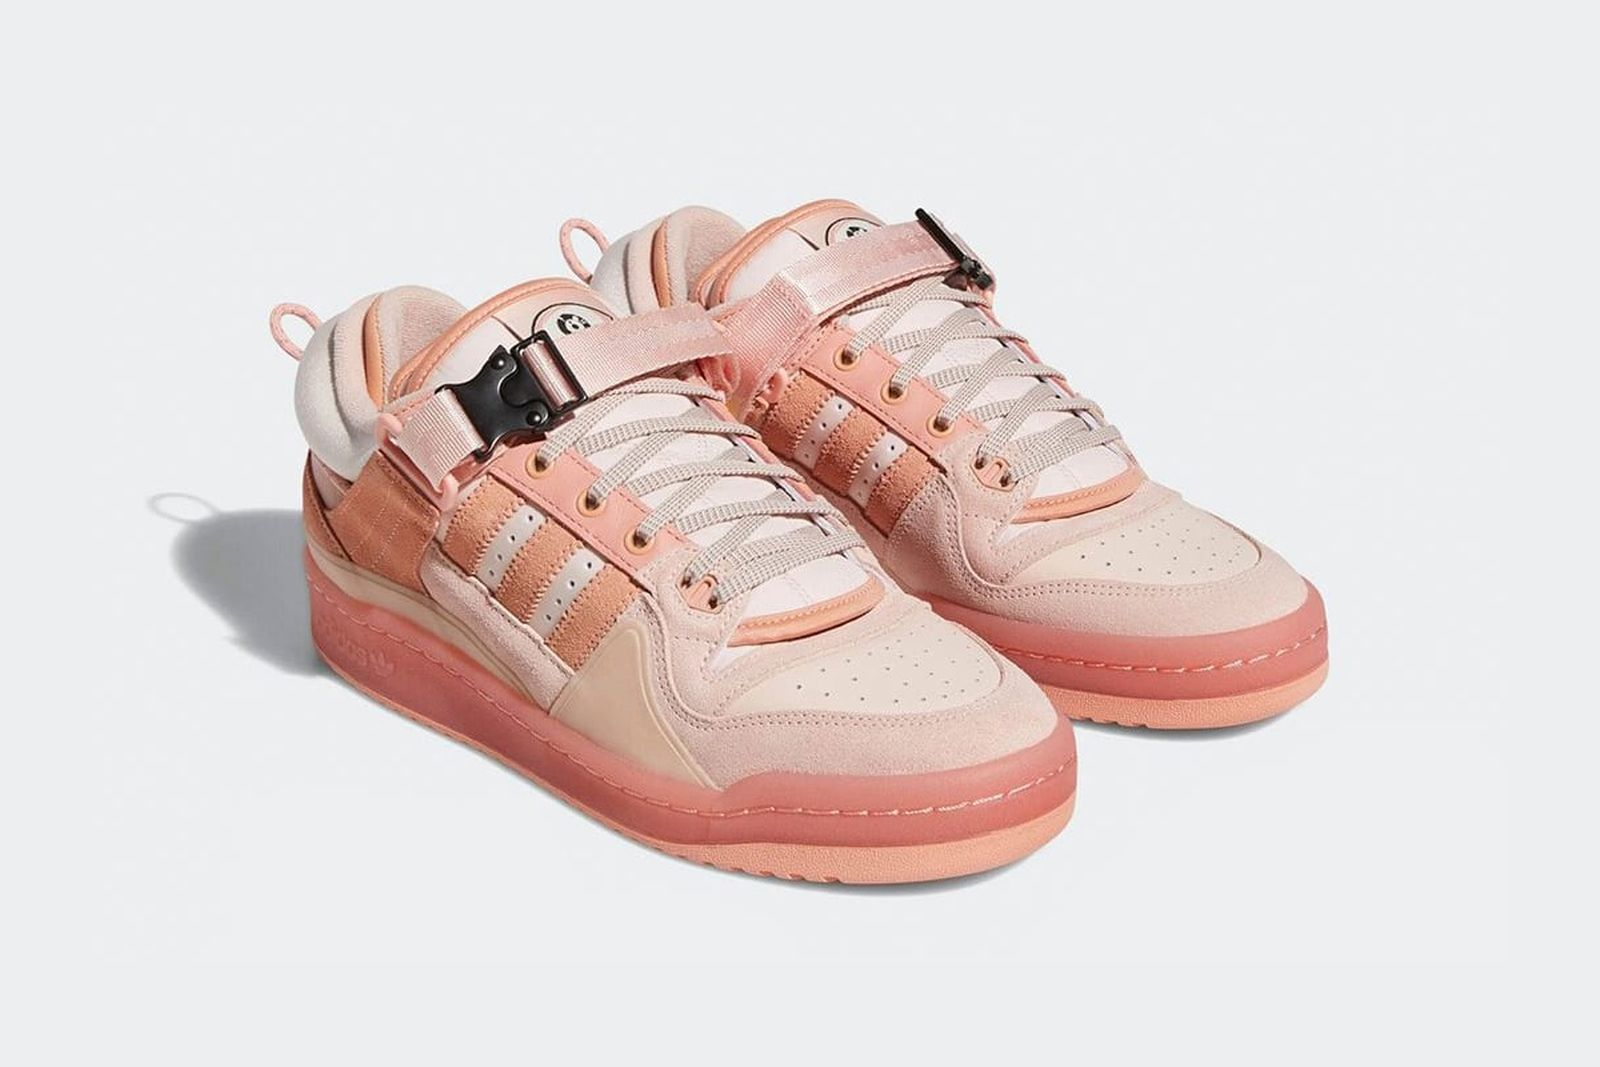 bad-bunny-adidas-forum-buckle-low-pink-release-date-price-05